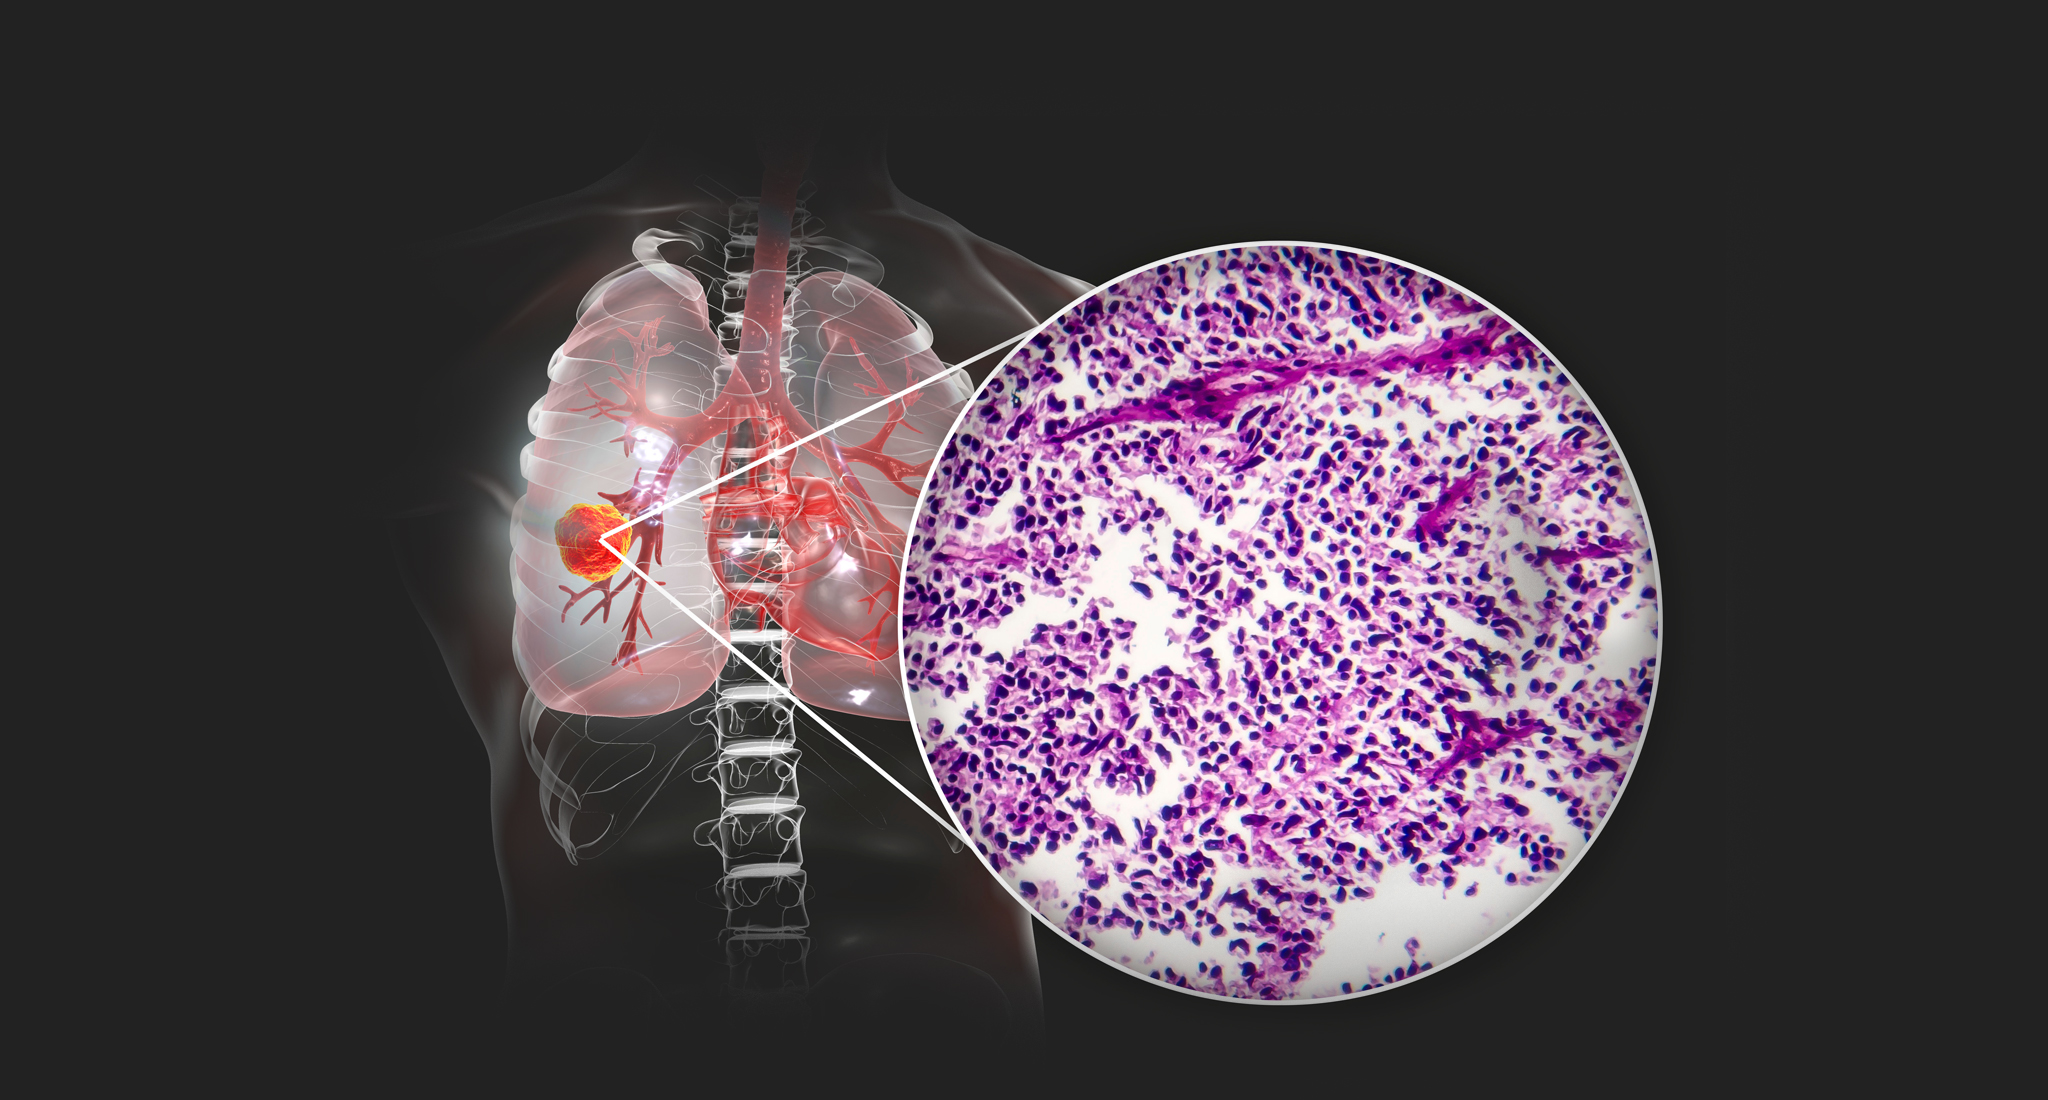 KRAS mutated NSCLC, possible to treat with Sotorasib